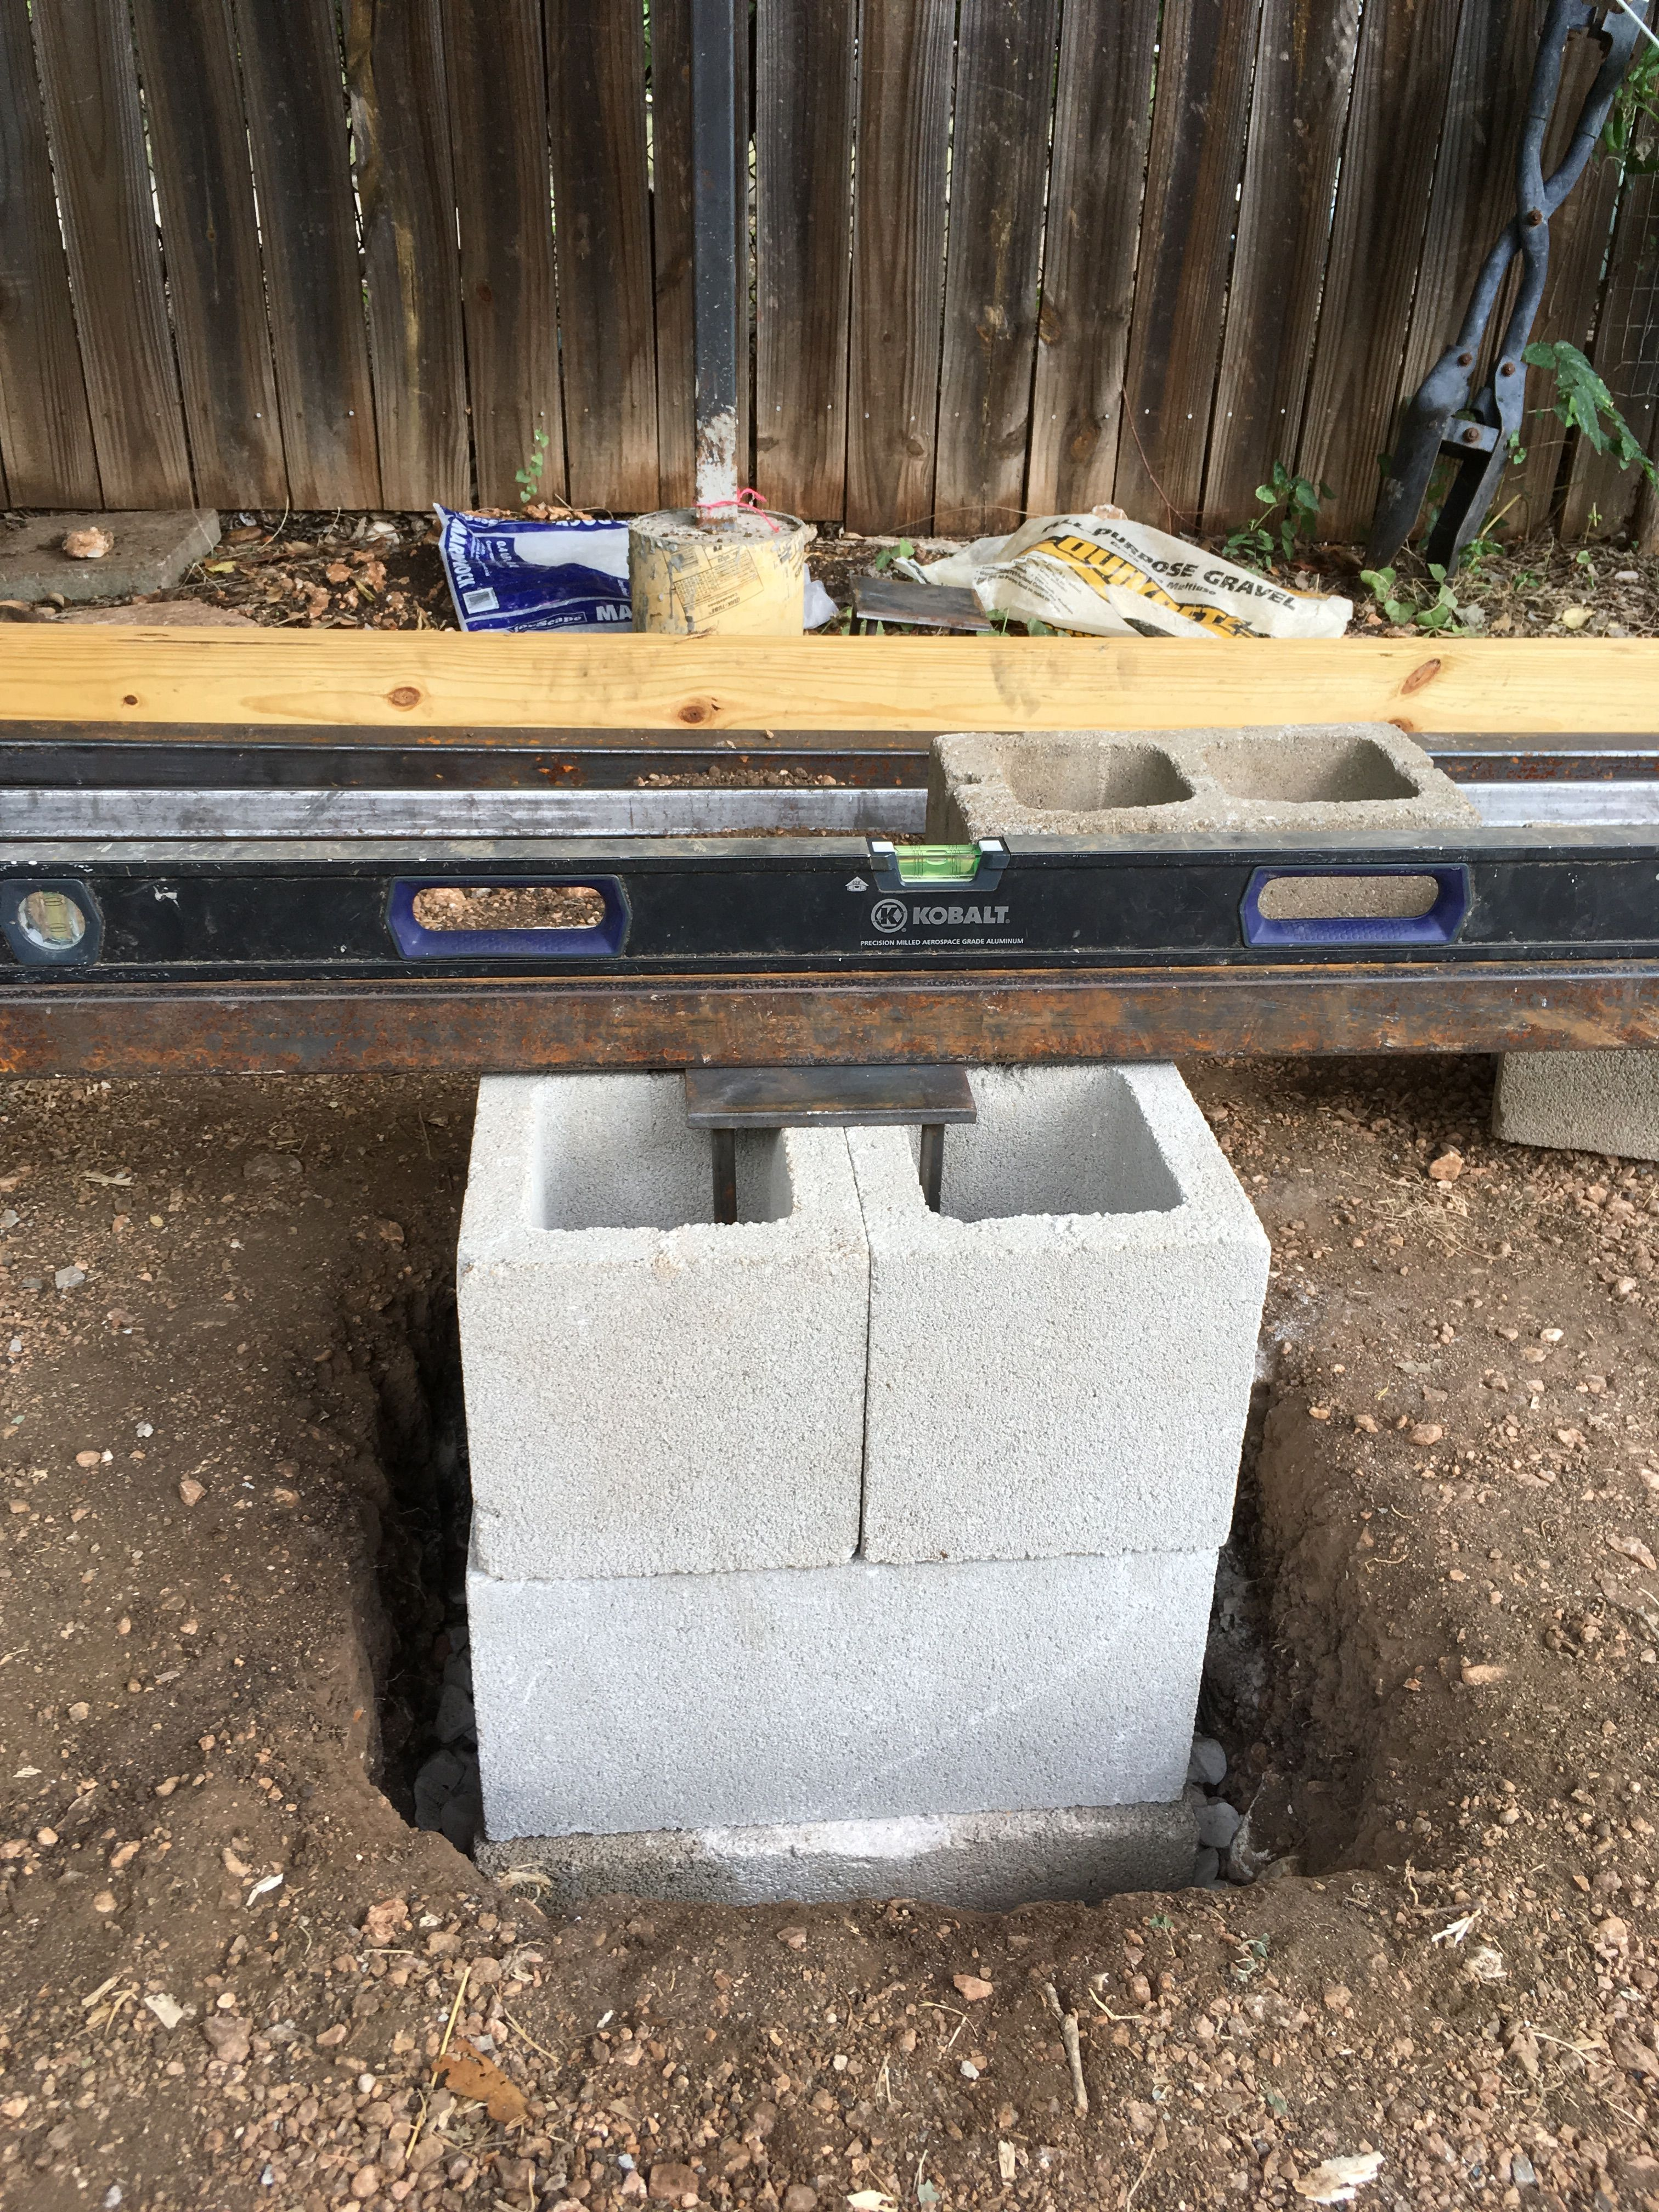 Concrete Pier Mockup For Floor Support For Gear Shed Shed Floor Ideas For Shed Flooring Shed Floor Covering Ideas